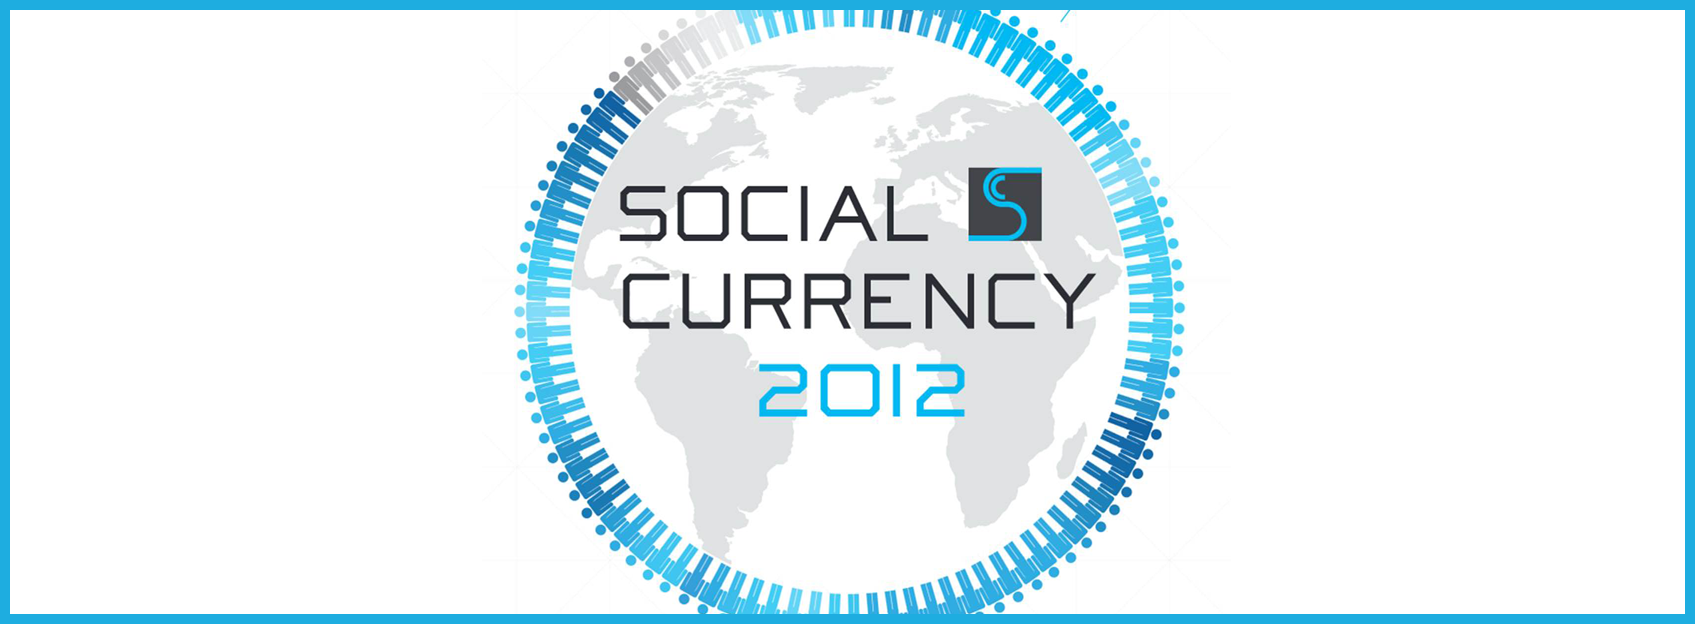 respondi sponsert Social Currency Studie 2012